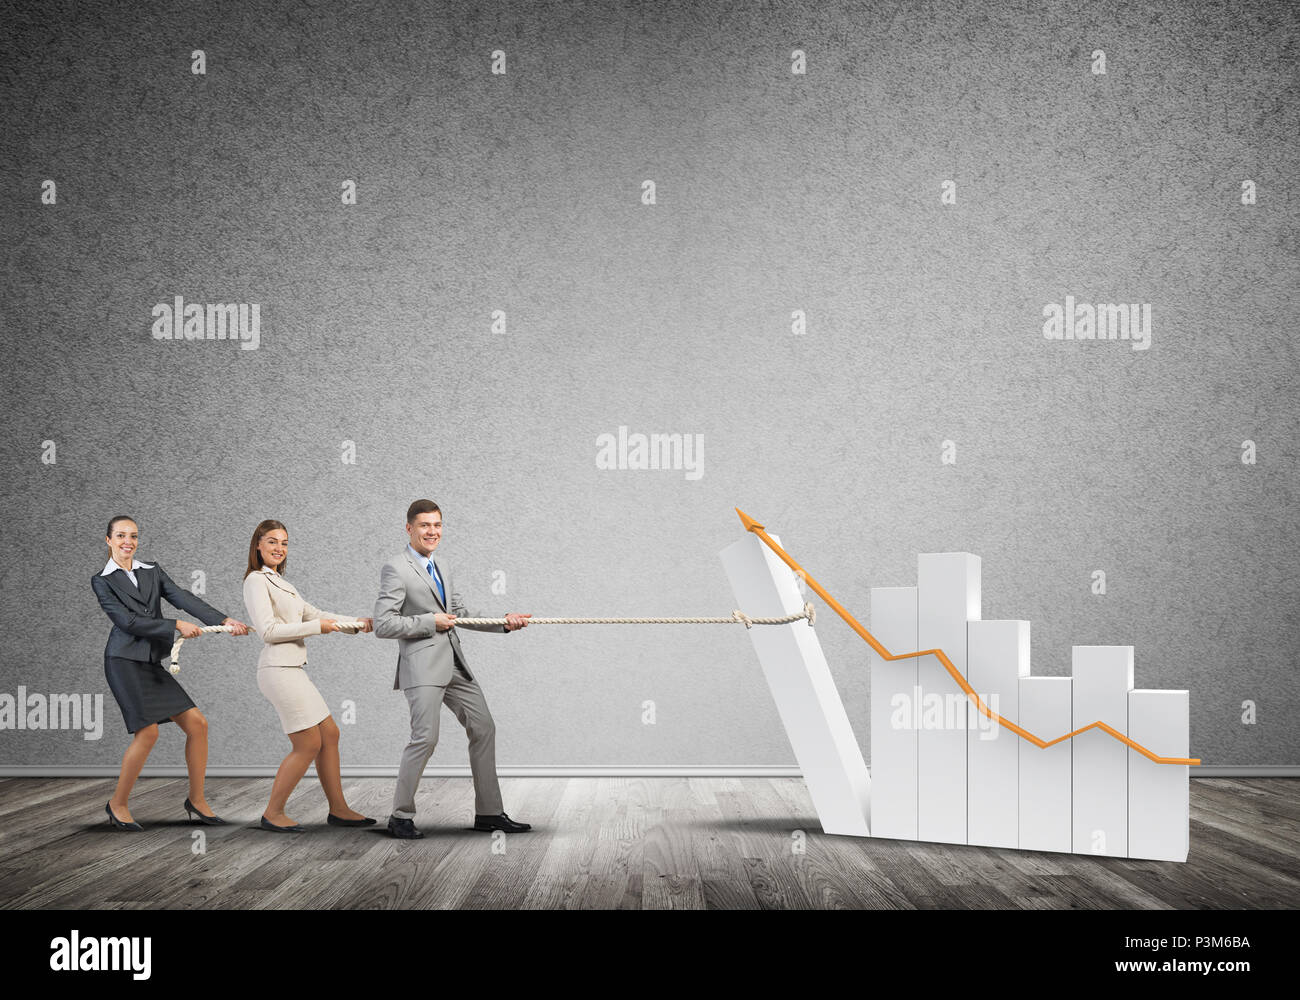 Businessteam working in collaboration pulling graph with rope as symbol of power and control - Stock Image